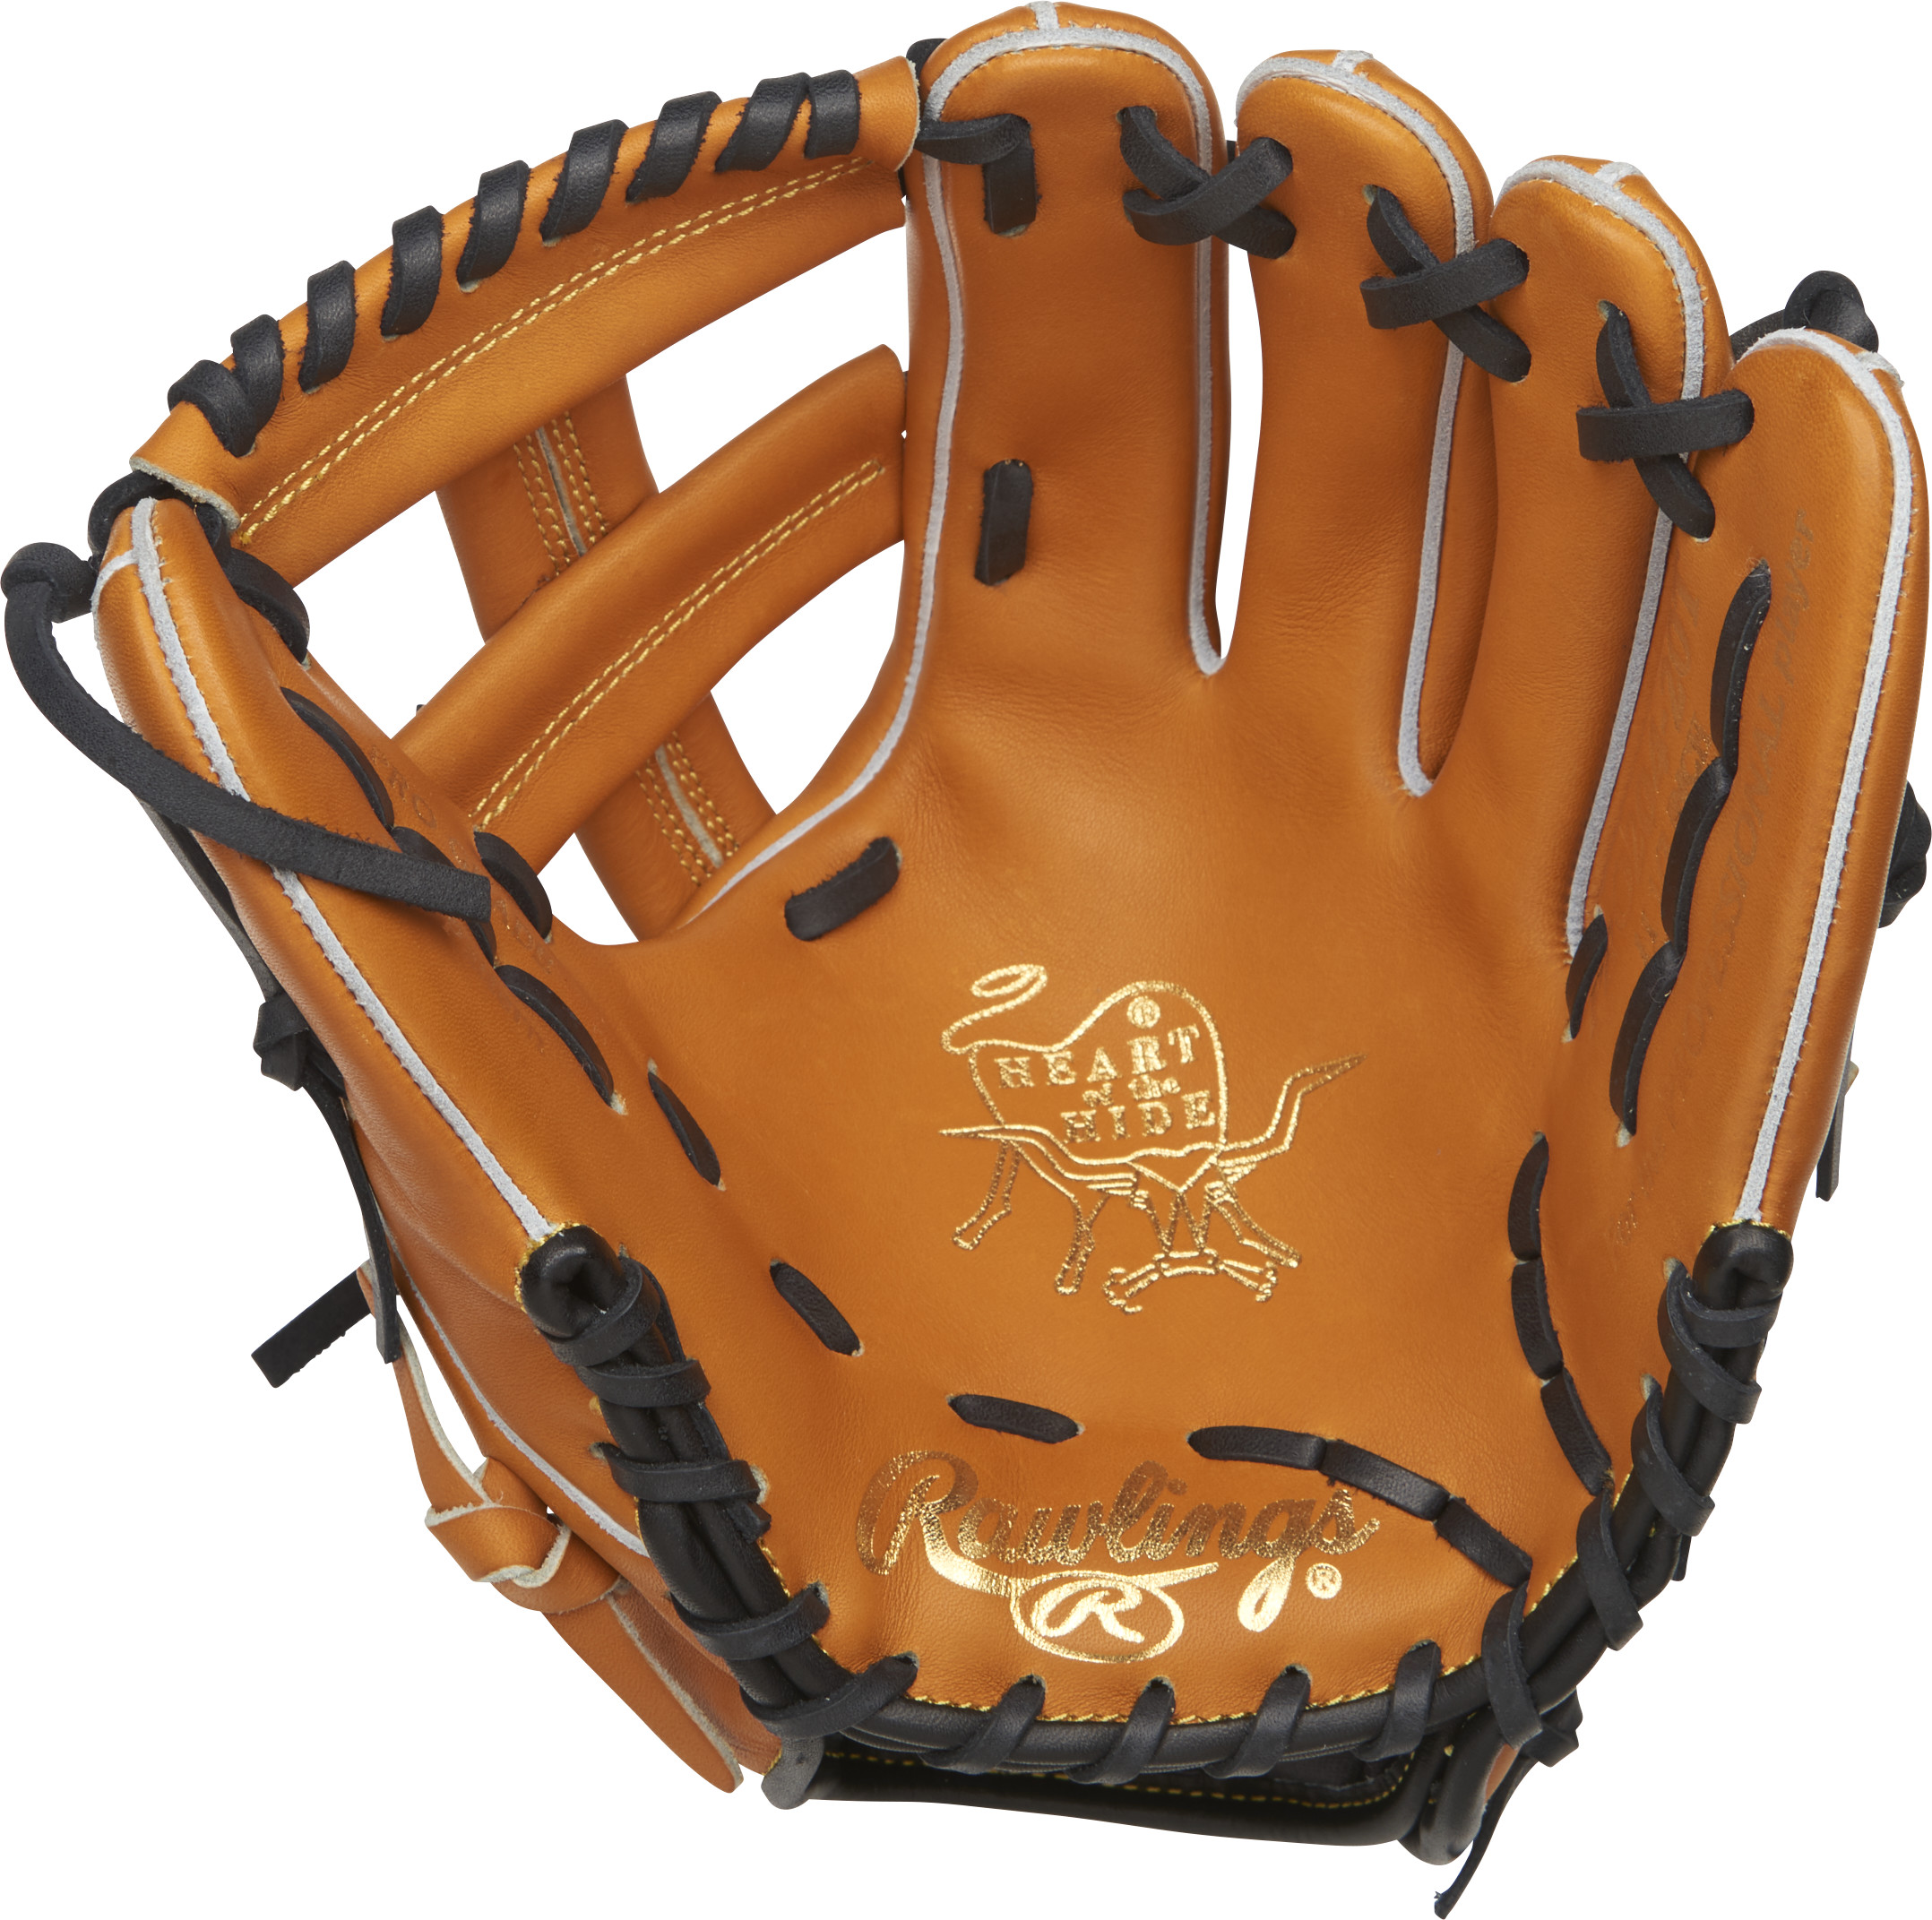 http://www.bestbatdeals.com/images/gloves/rawlings/PRO204-20T-1.jpg